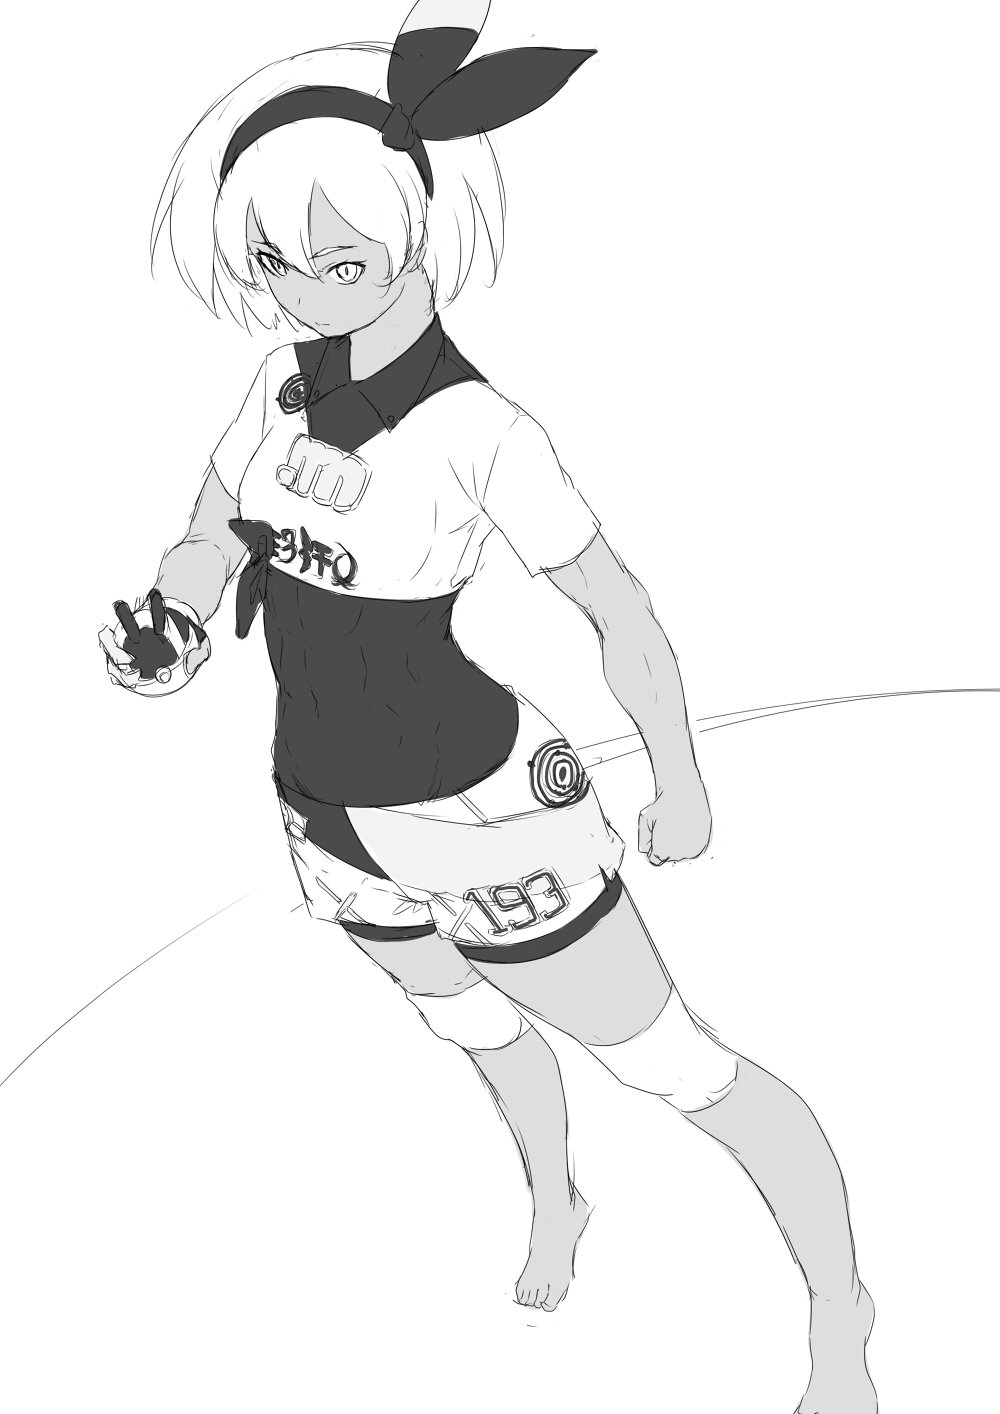 1girl abs barefoot breasts clenched_hand dark_skin greyscale hair_between_eyes hairband highres knee_pads monochrome niwatazumi poke_ball pokemon pokemon_(game) pokemon_swsh saitou_(pokemon) shirt short_hair short_sleeves shorts small_breasts solo tight tight_shirt tight_top